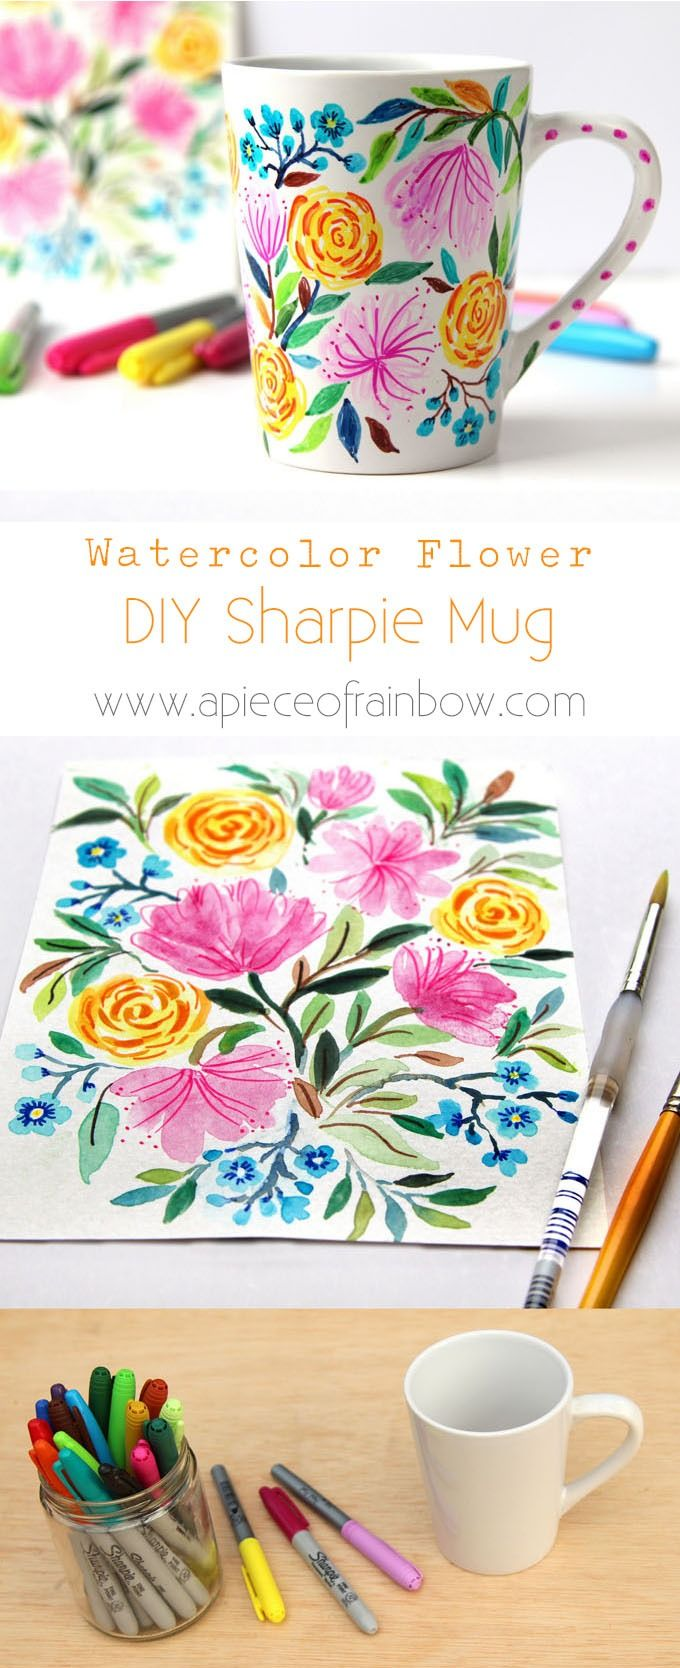 Watercolor Flower DIY Sharpie Mug - A Piece Of Rainbow